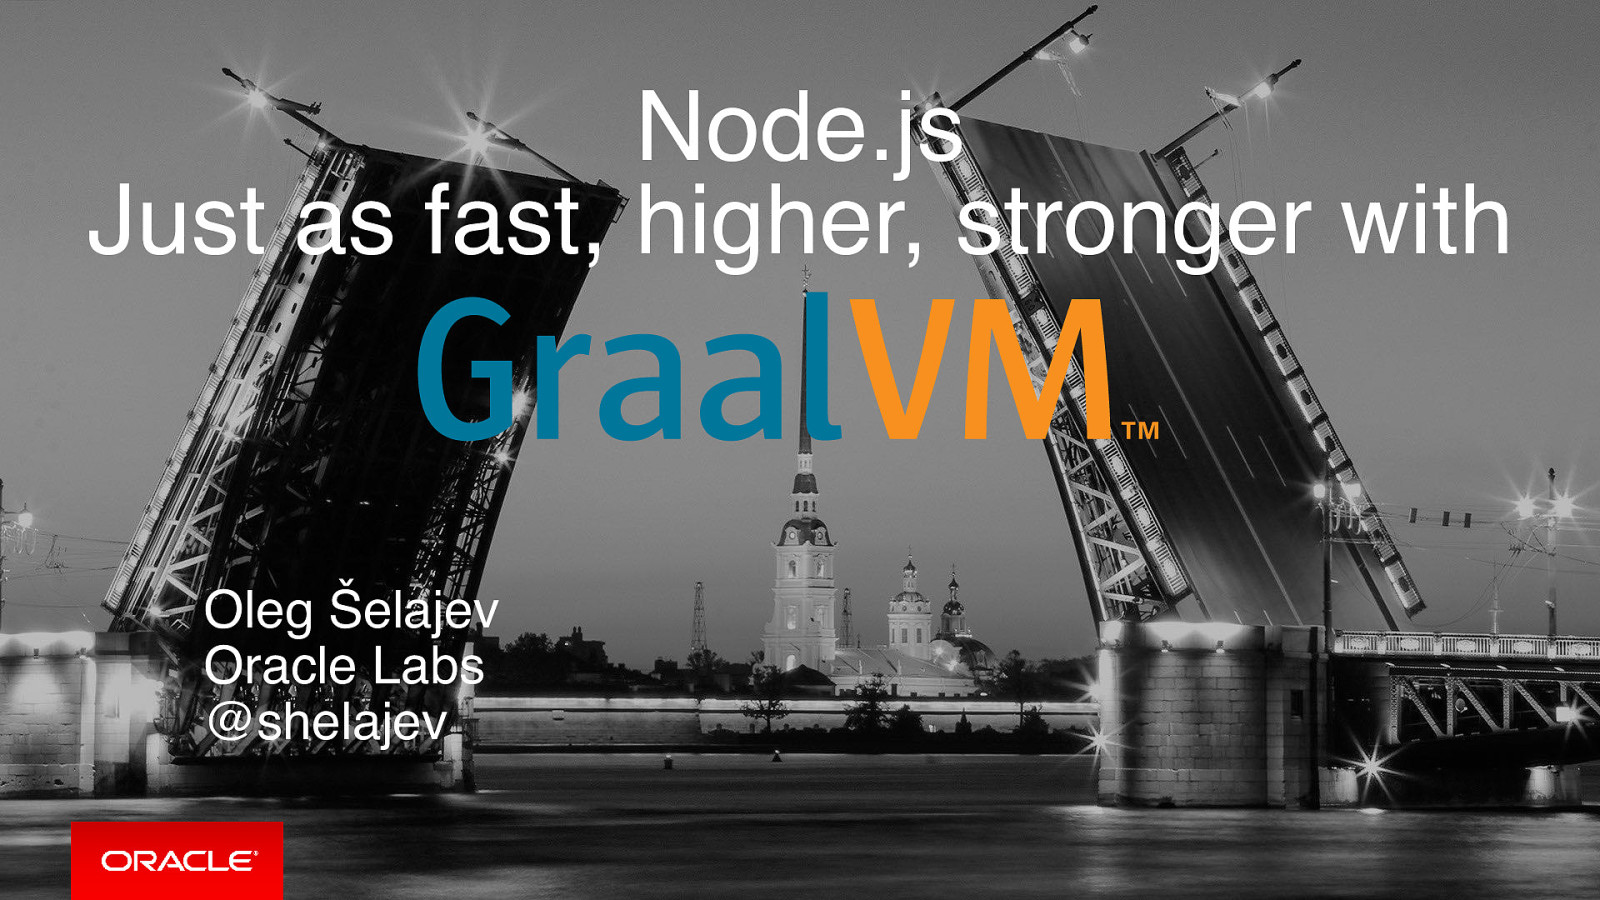 Node.js: Just as fast, higher, stronger with GraalVM